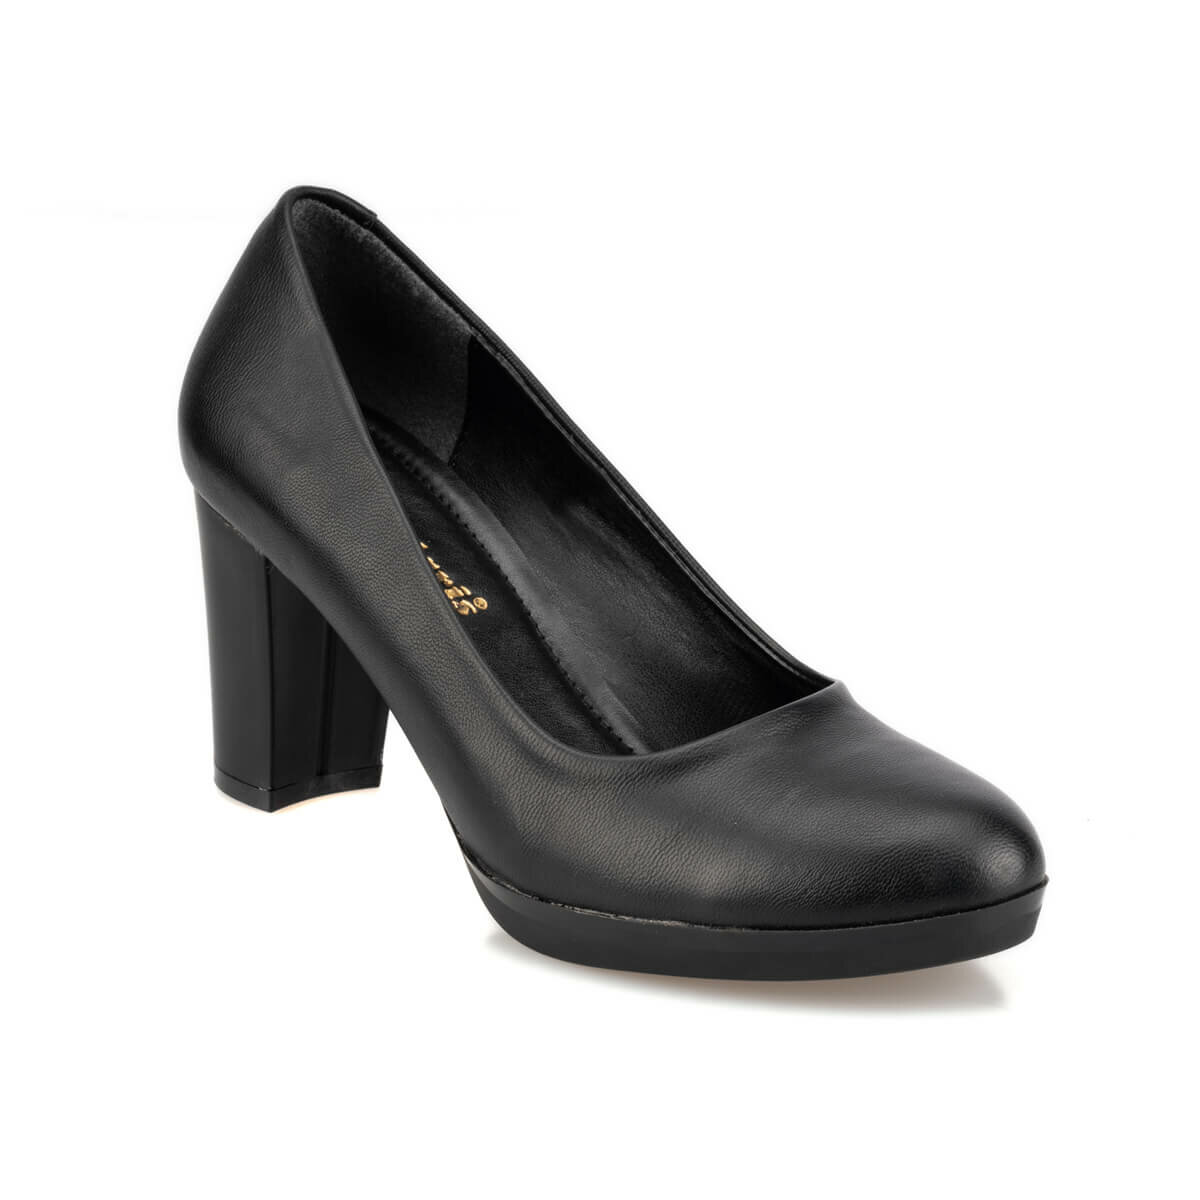 FLO 92.310256.Z Black Women Shoes Polaris